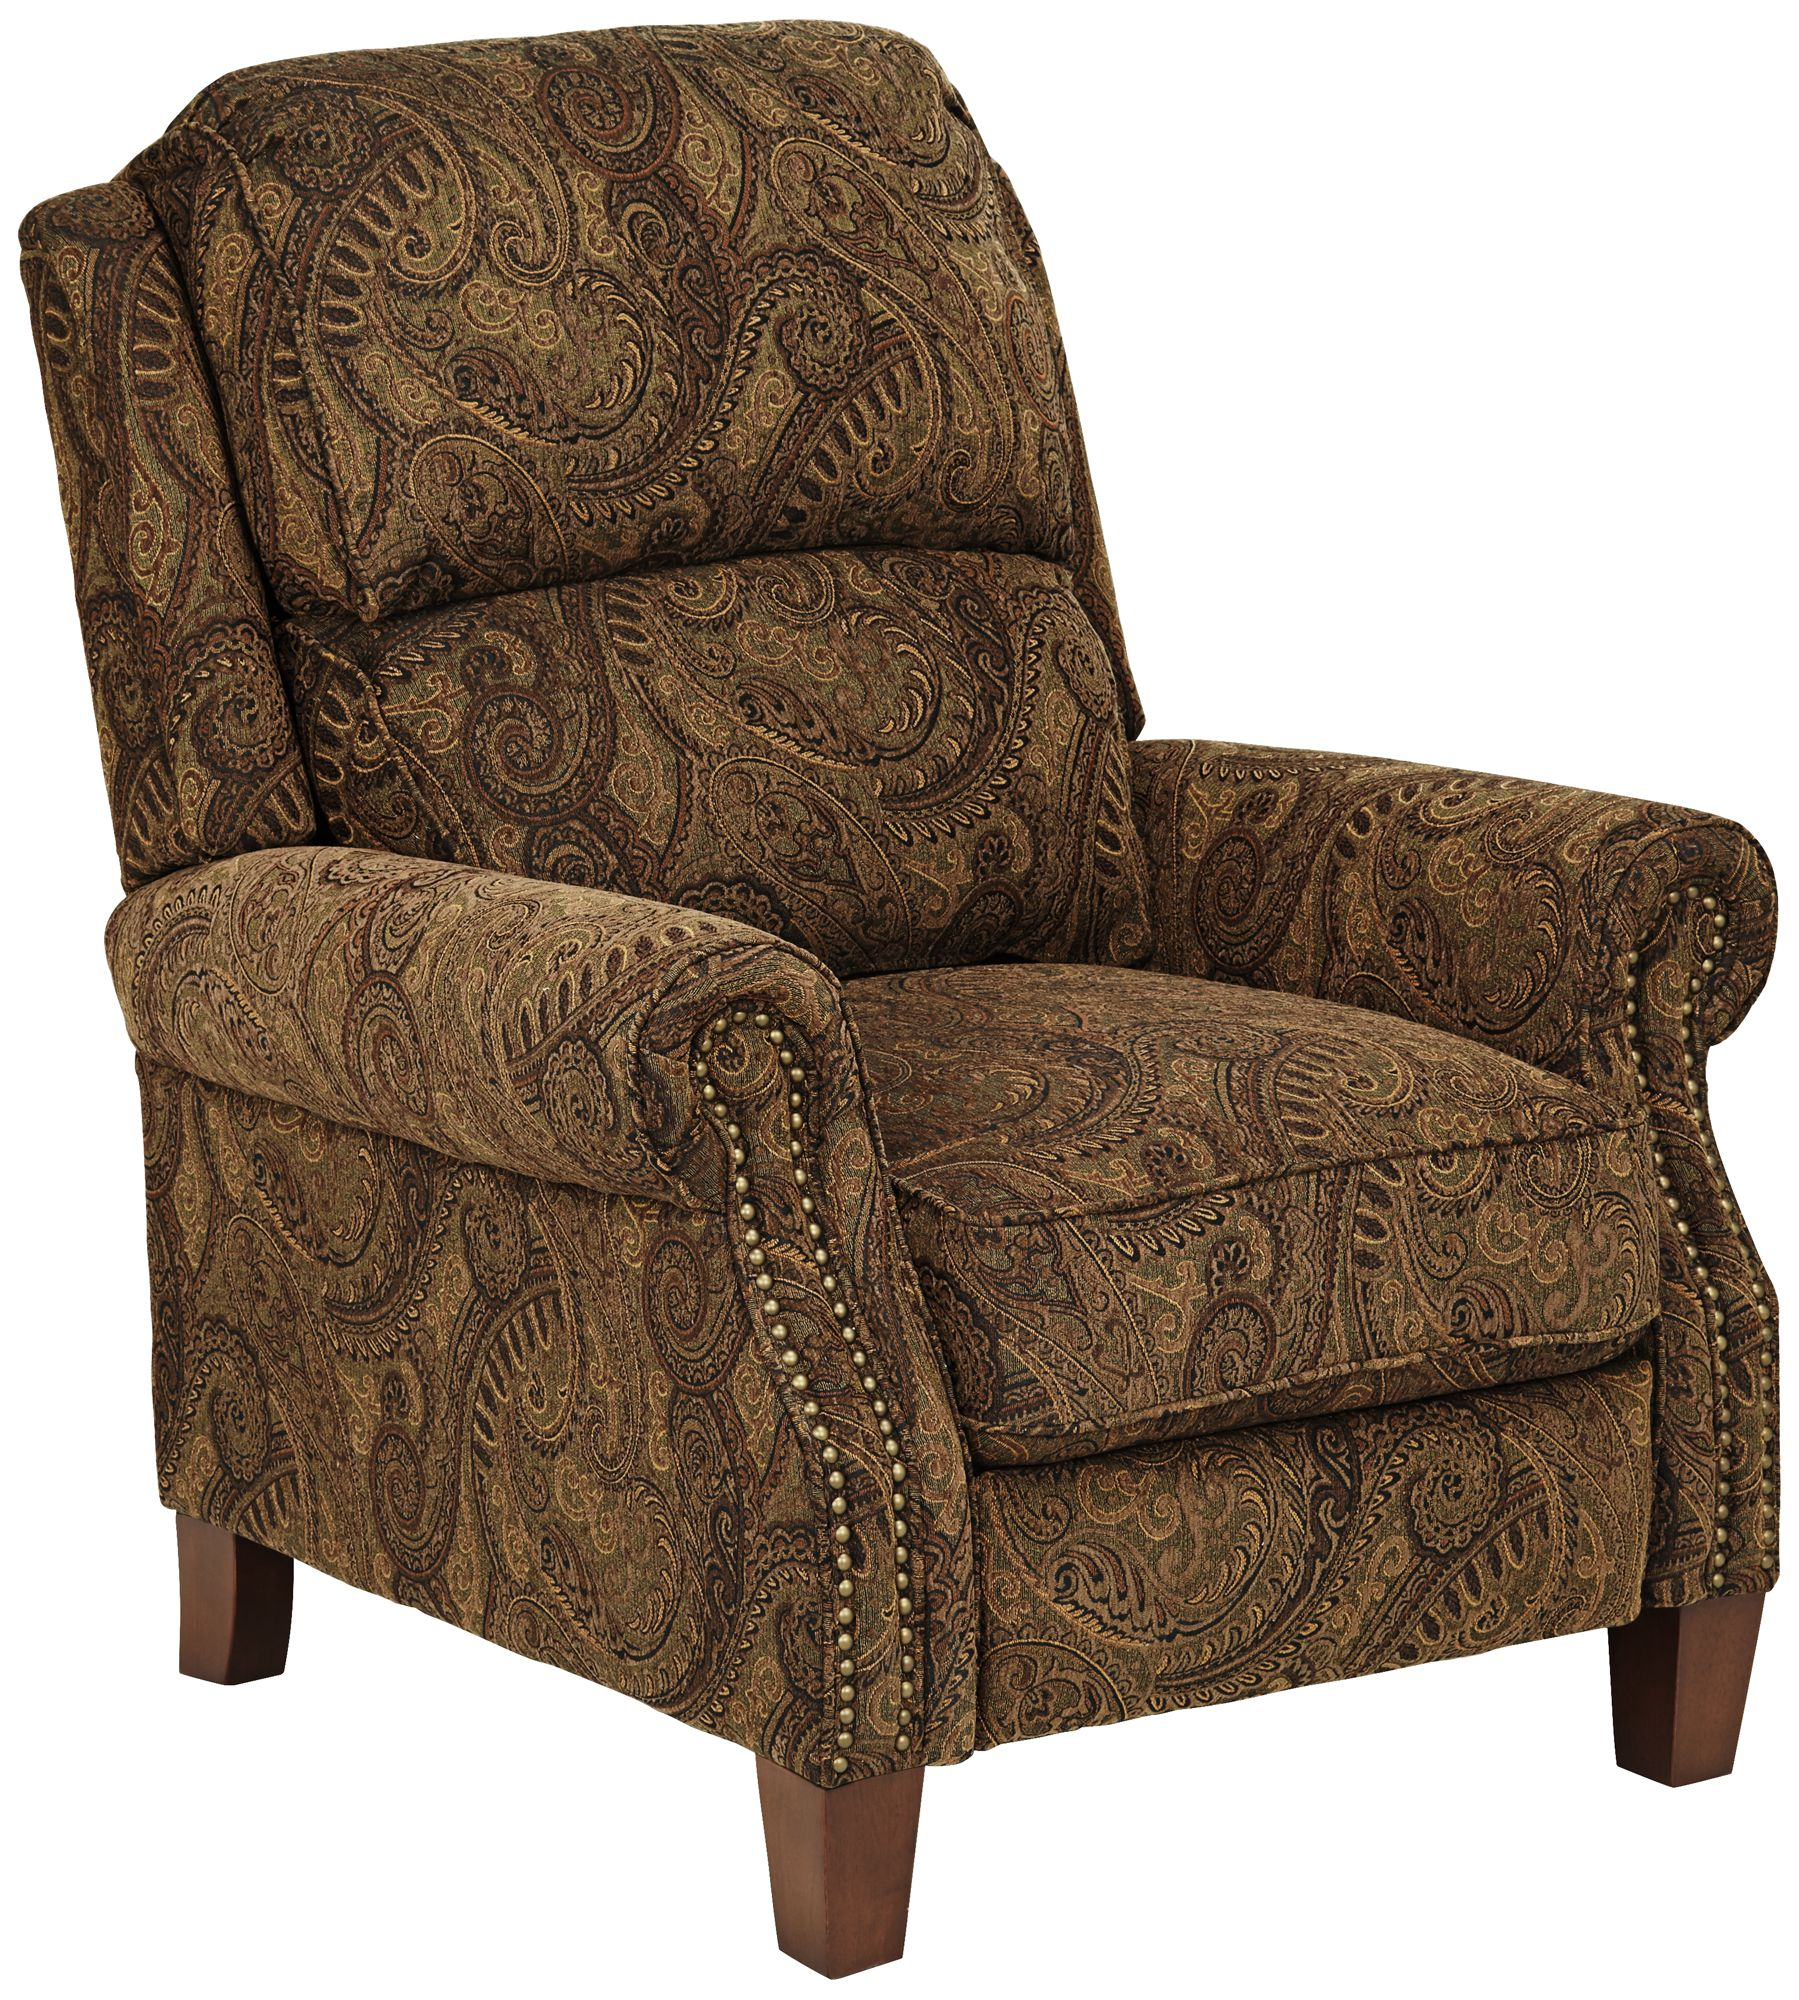 Beaumont Warm Brown Paisley Push-Thru Arm 3-Way Recliner  sc 1 st  L&s Plus & Recliners - New Recliner Chairs | Lamps Plus islam-shia.org